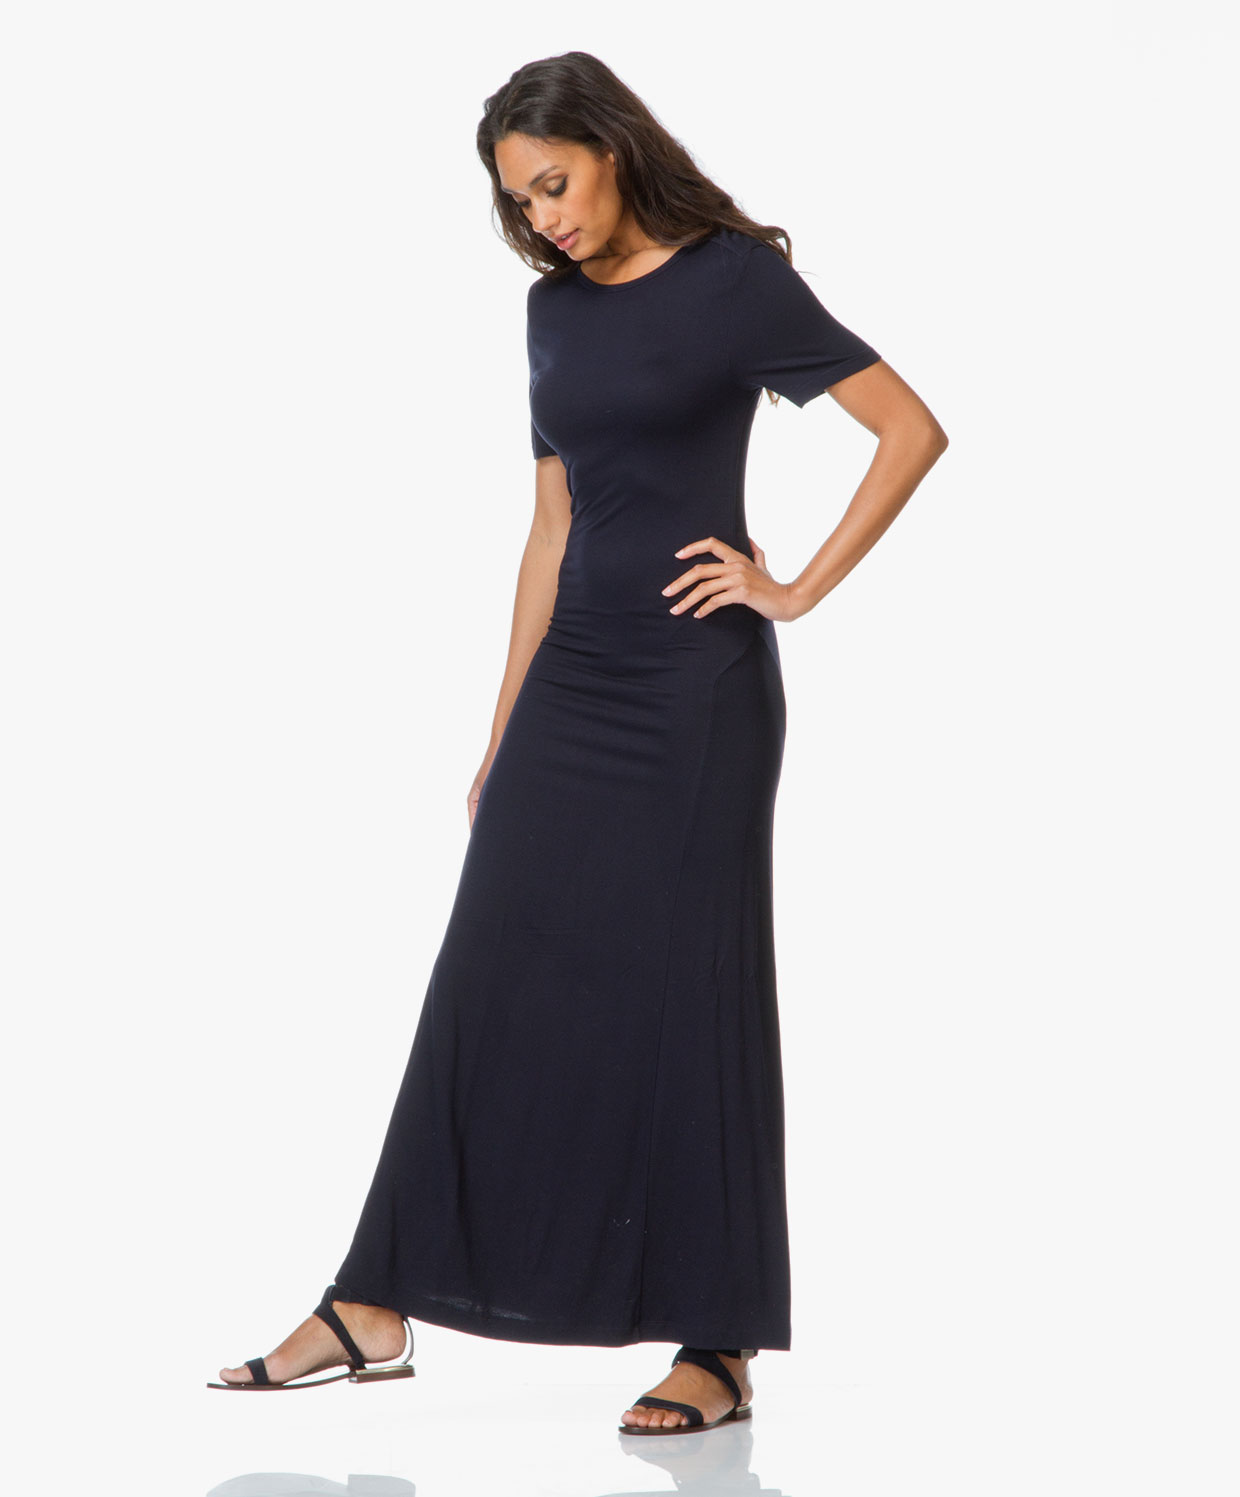 Filippa K Maxi T-shirt Dress - Navy - Filippa K